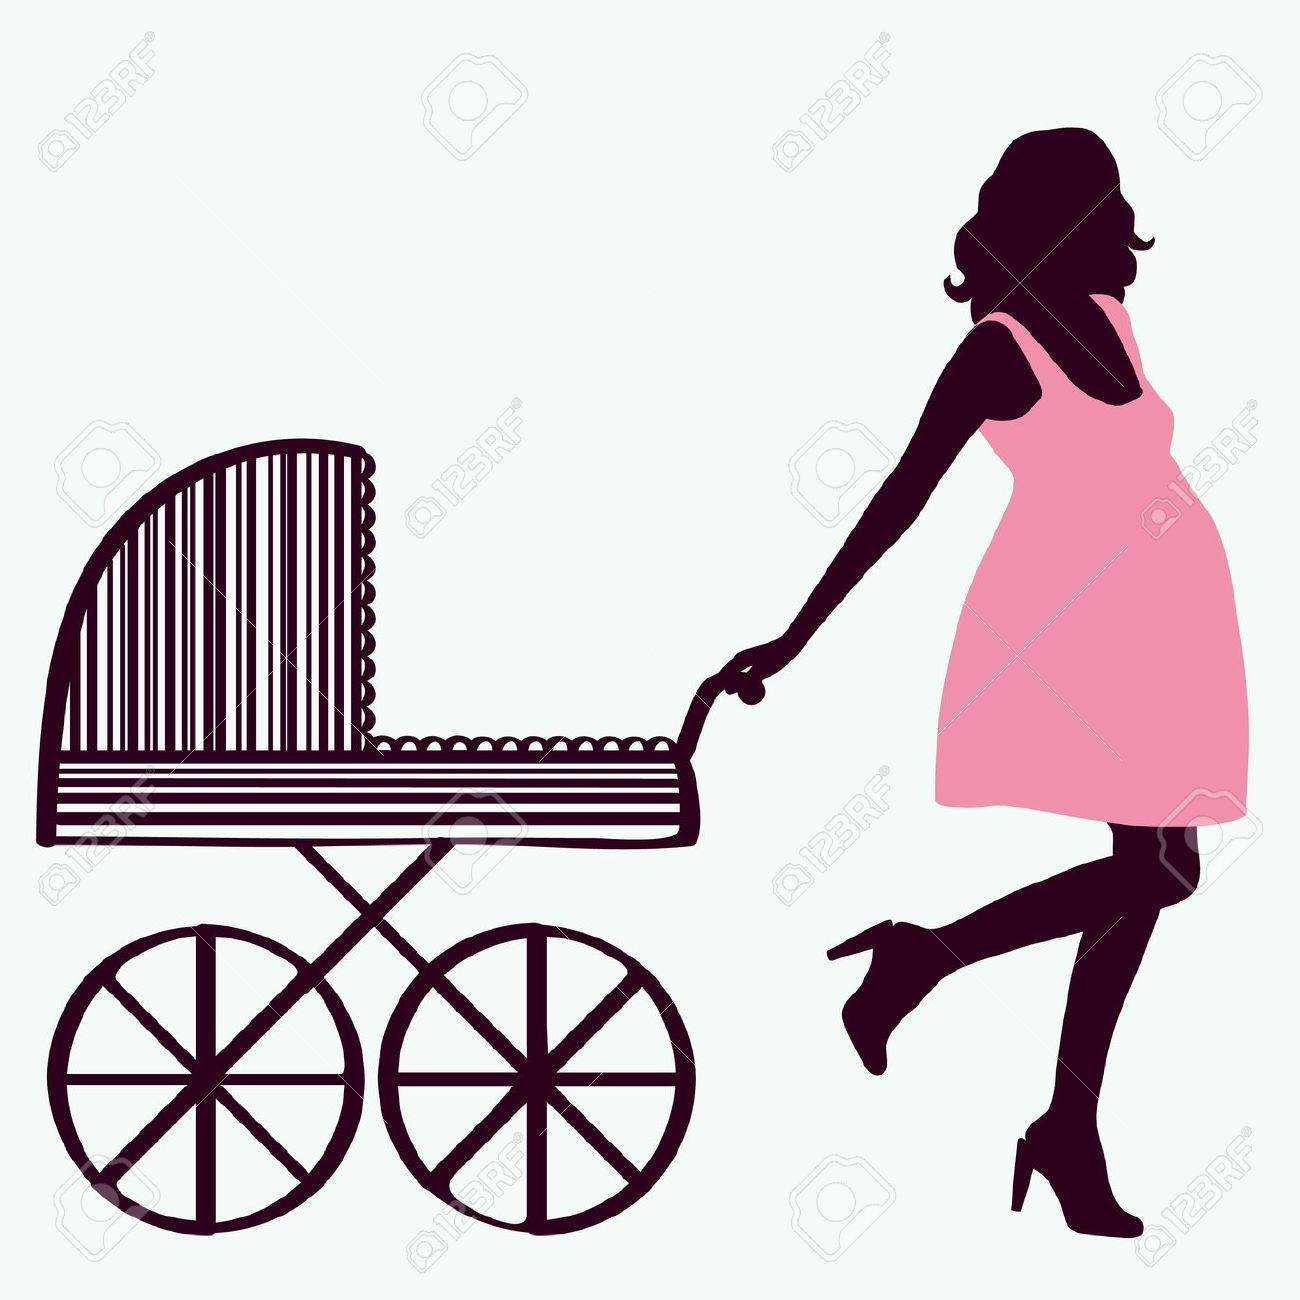 9429908-Woman-silhouette-with-baby-carriage-Stock-Vector ...